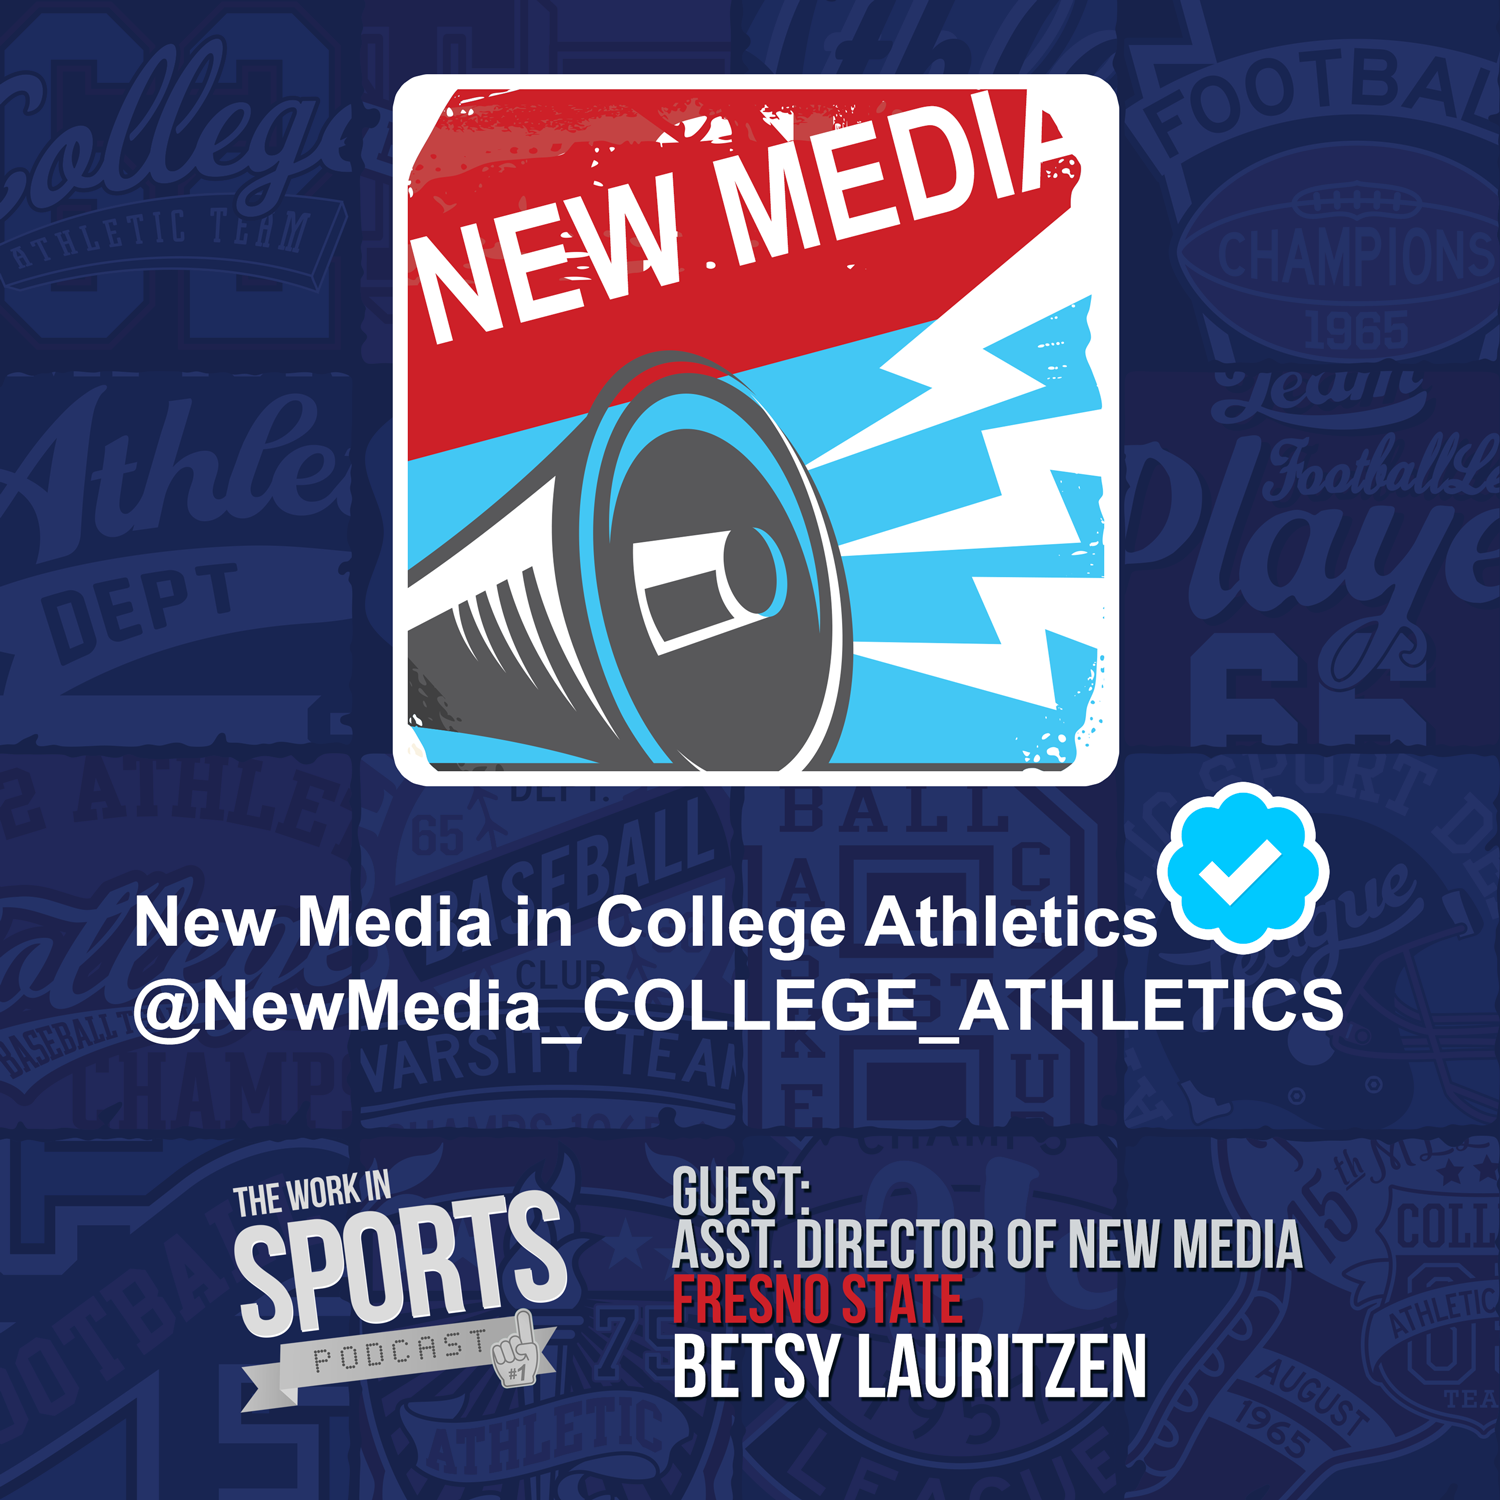 betsy lauritzen work in sports podcast fresno state